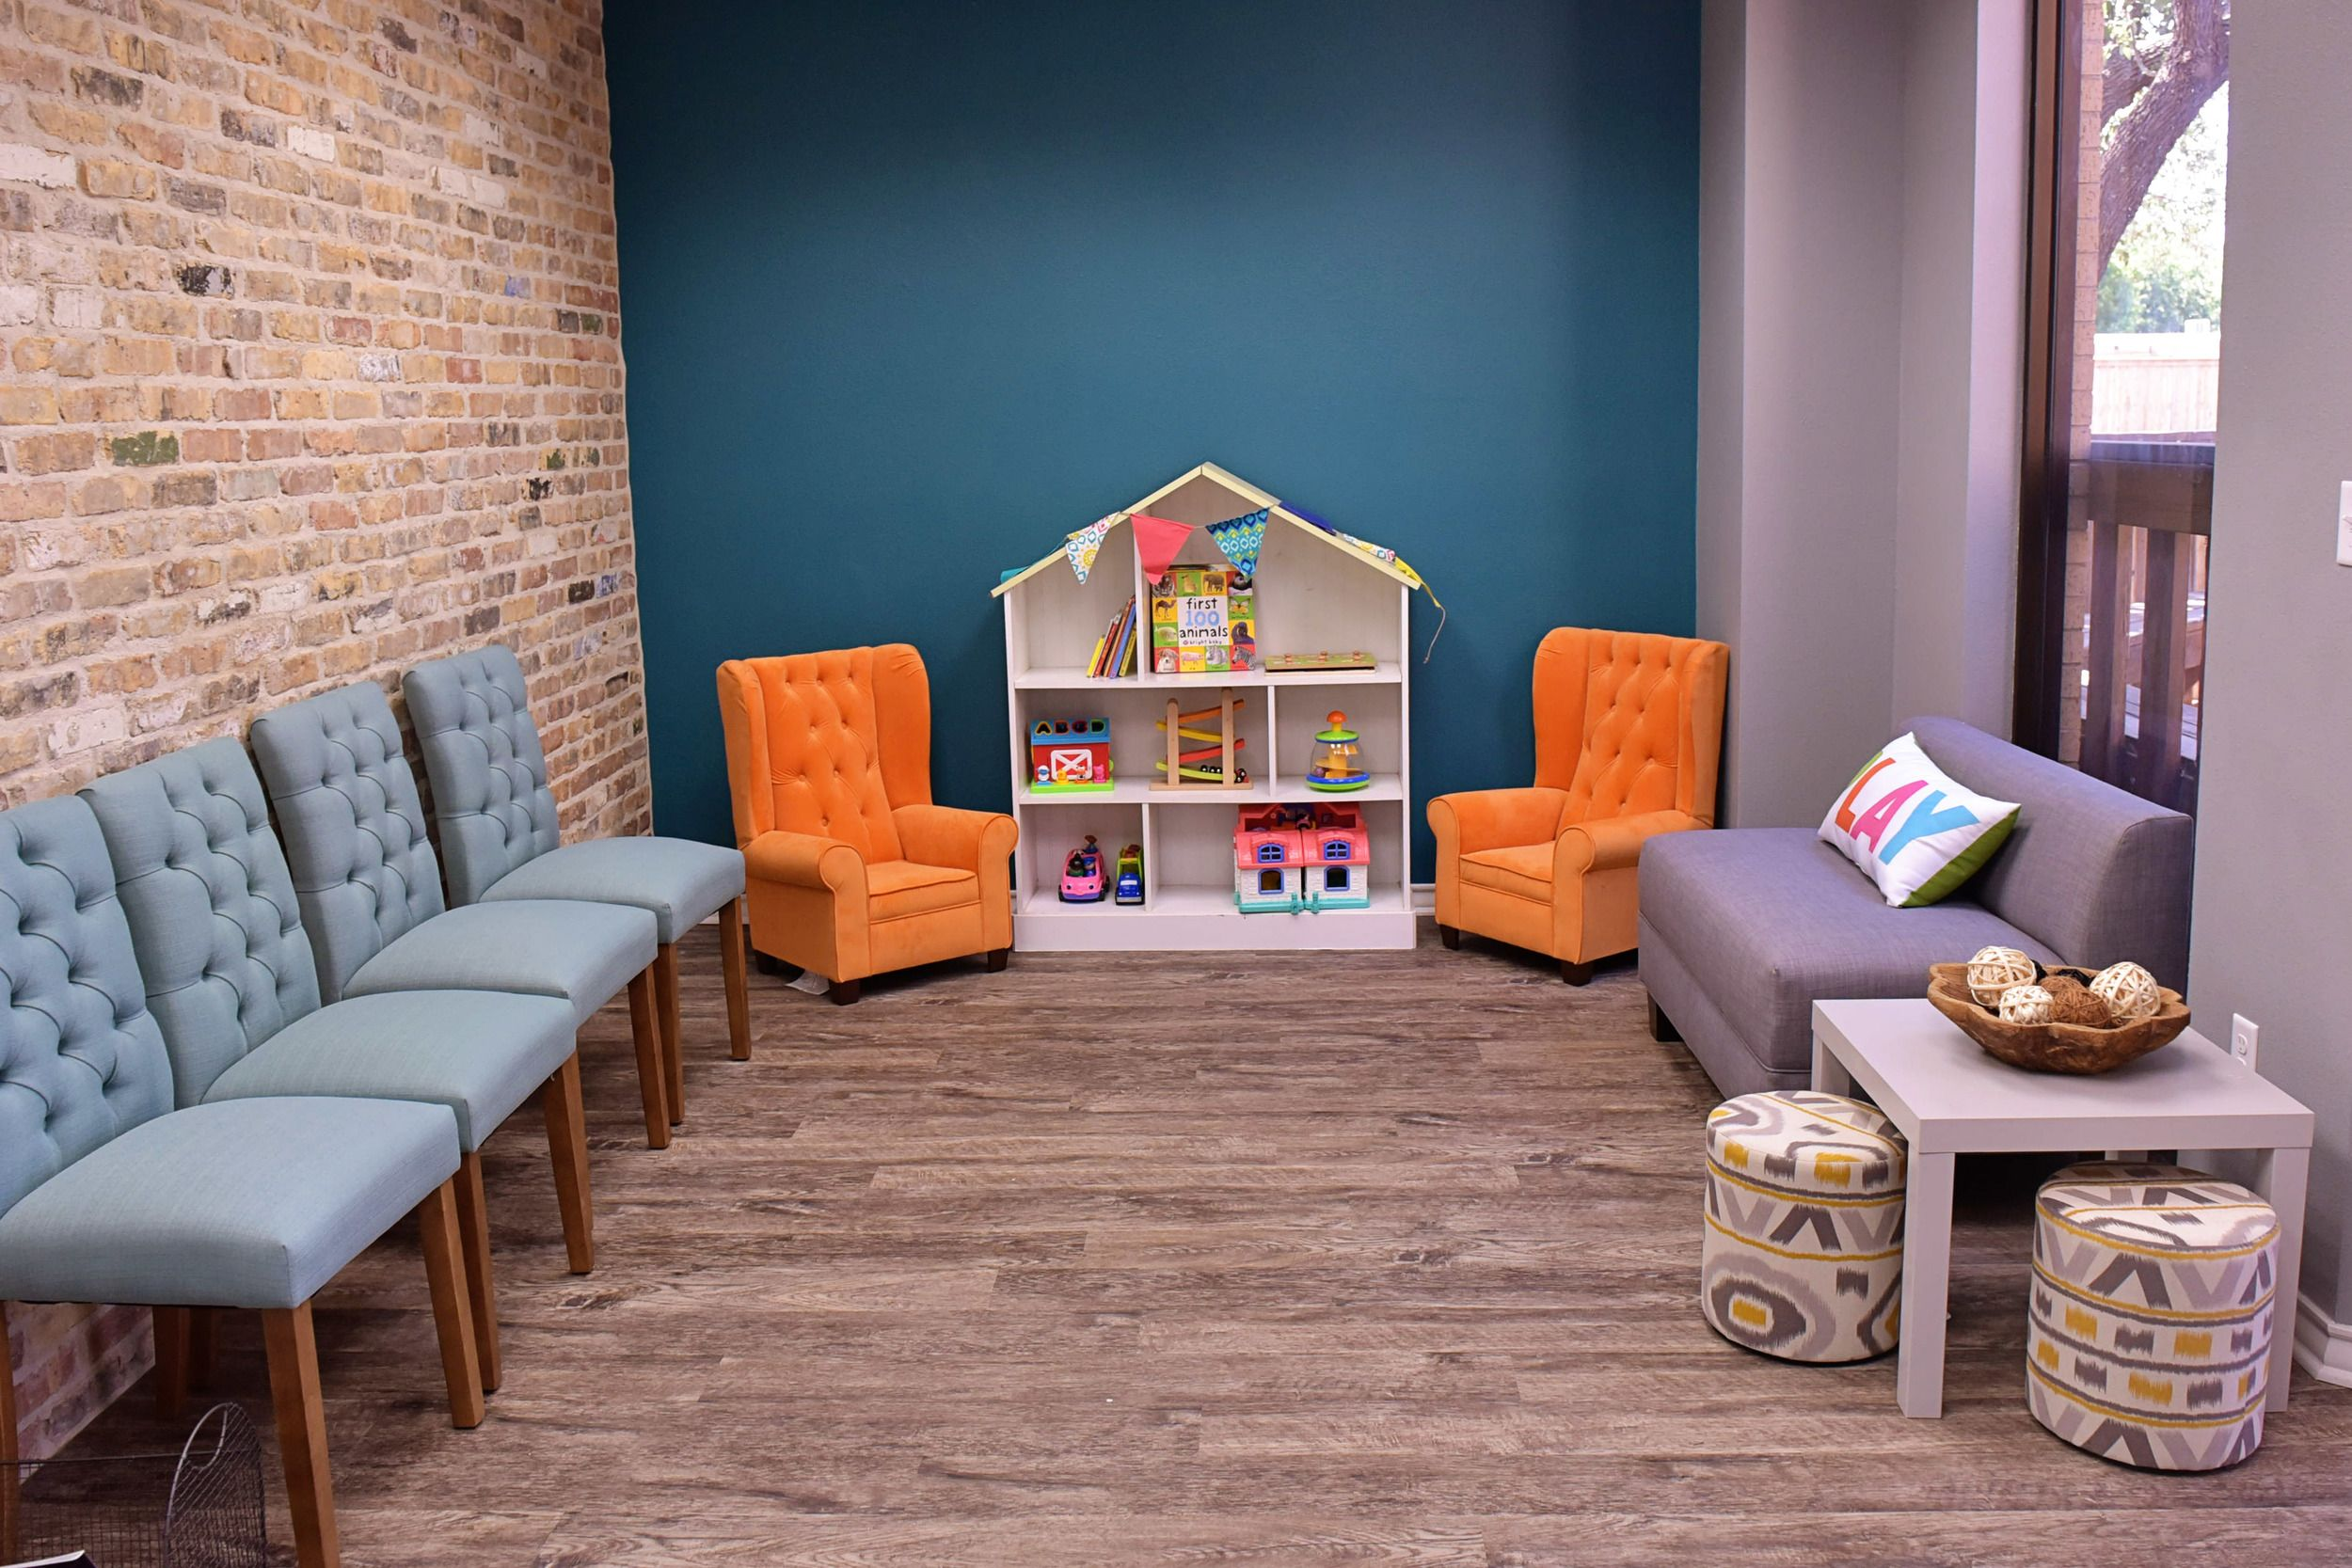 Counseling Practice Office Design Play Therapy Room Design Therapy Playroom Design Counseling Office Waiting Room